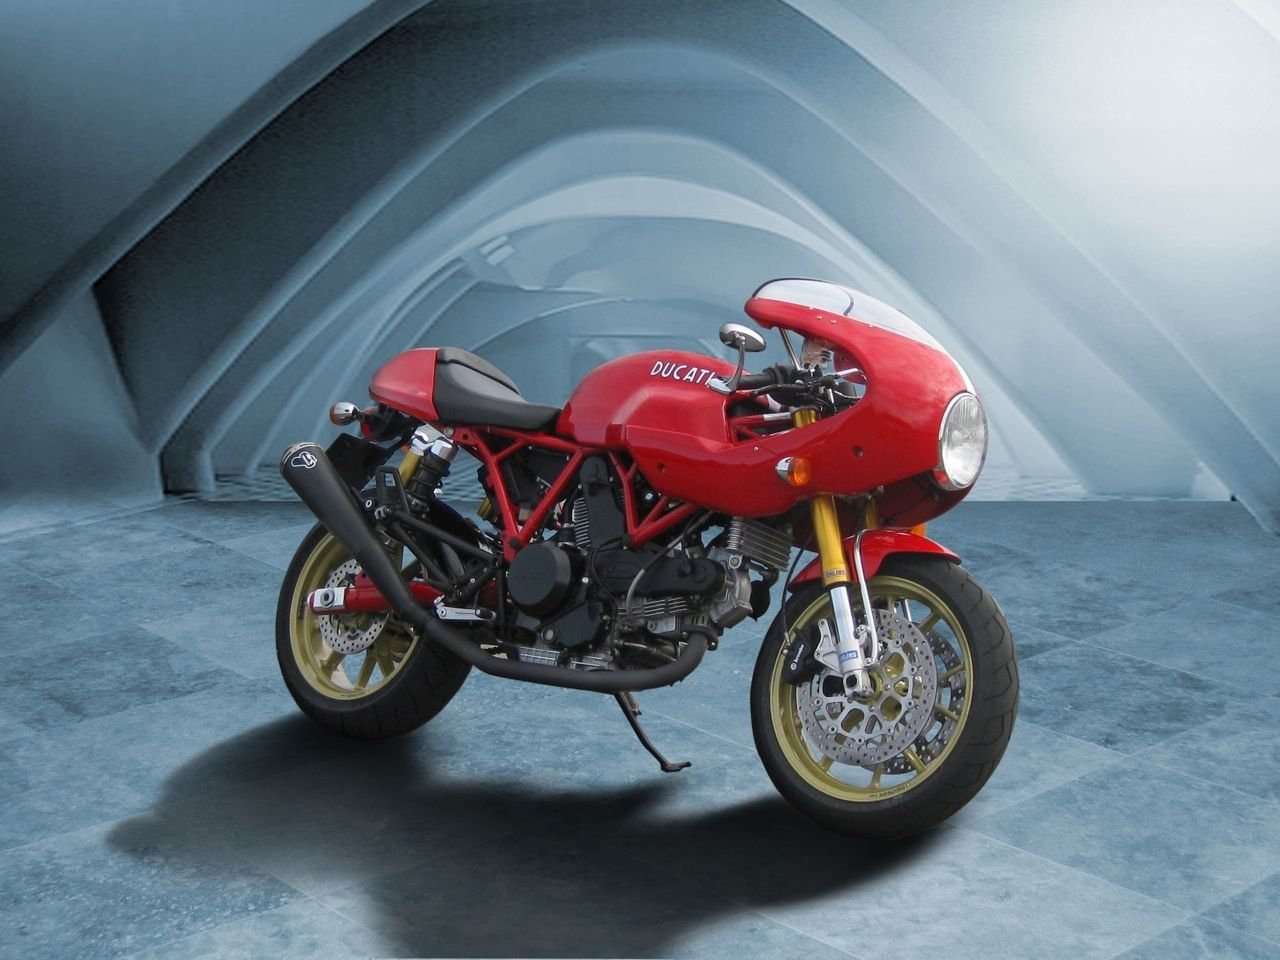 Ducati Sportclassic 1000 Wiring Ducati Pictures Images And Videos